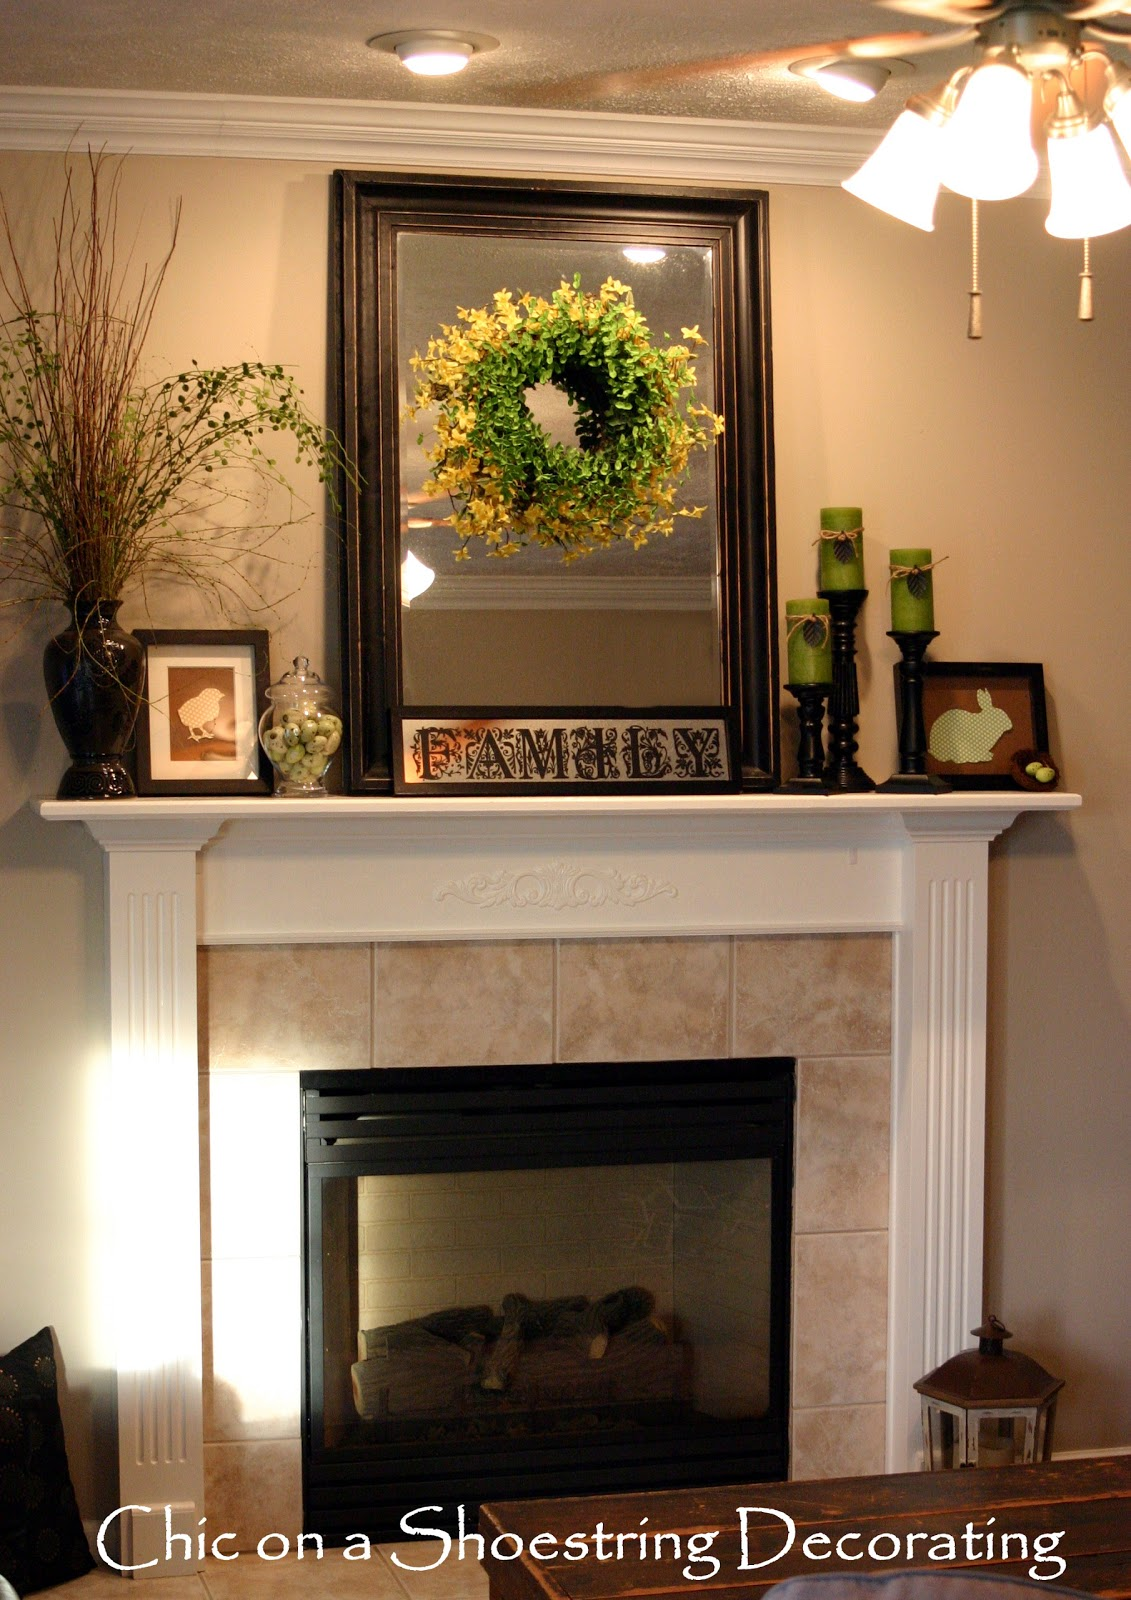 Design Mantle Decor chic on a shoestring decorating easter mantel the cheap spring mantle mantel